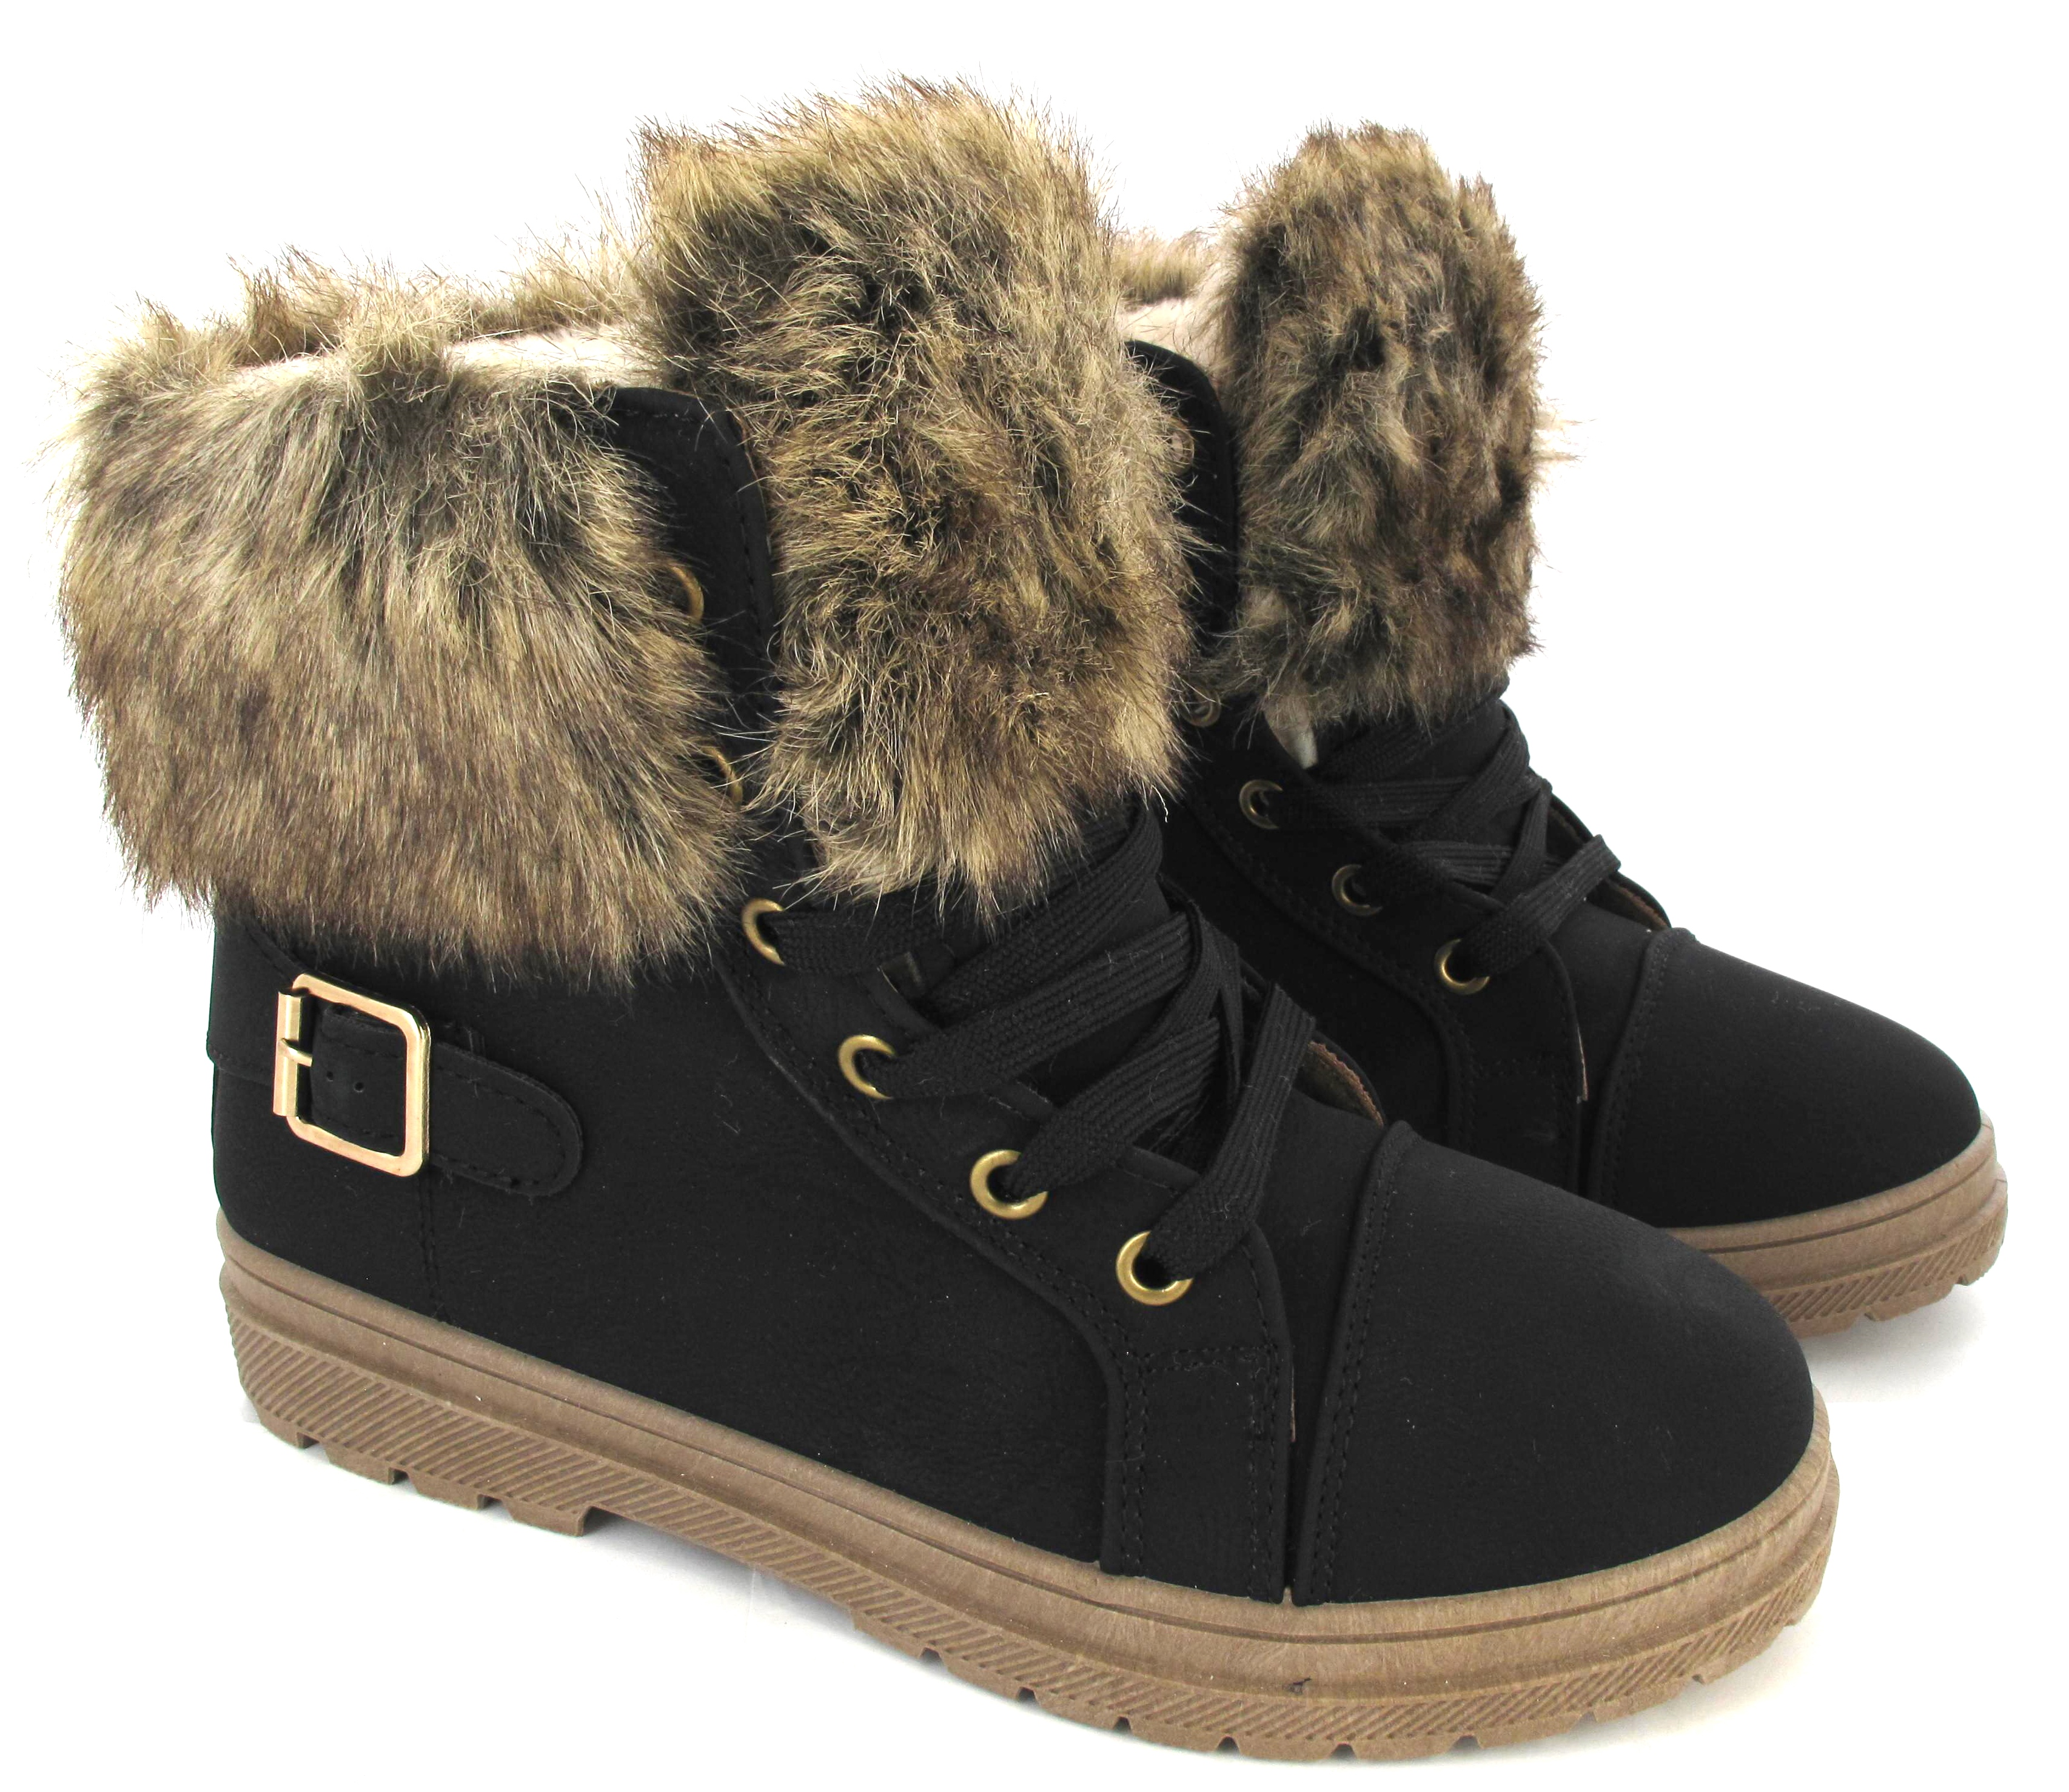 Womens Faux Fur Grip Sole Winter Warm Ankle Boots Sneakers Trainers Shoes Size